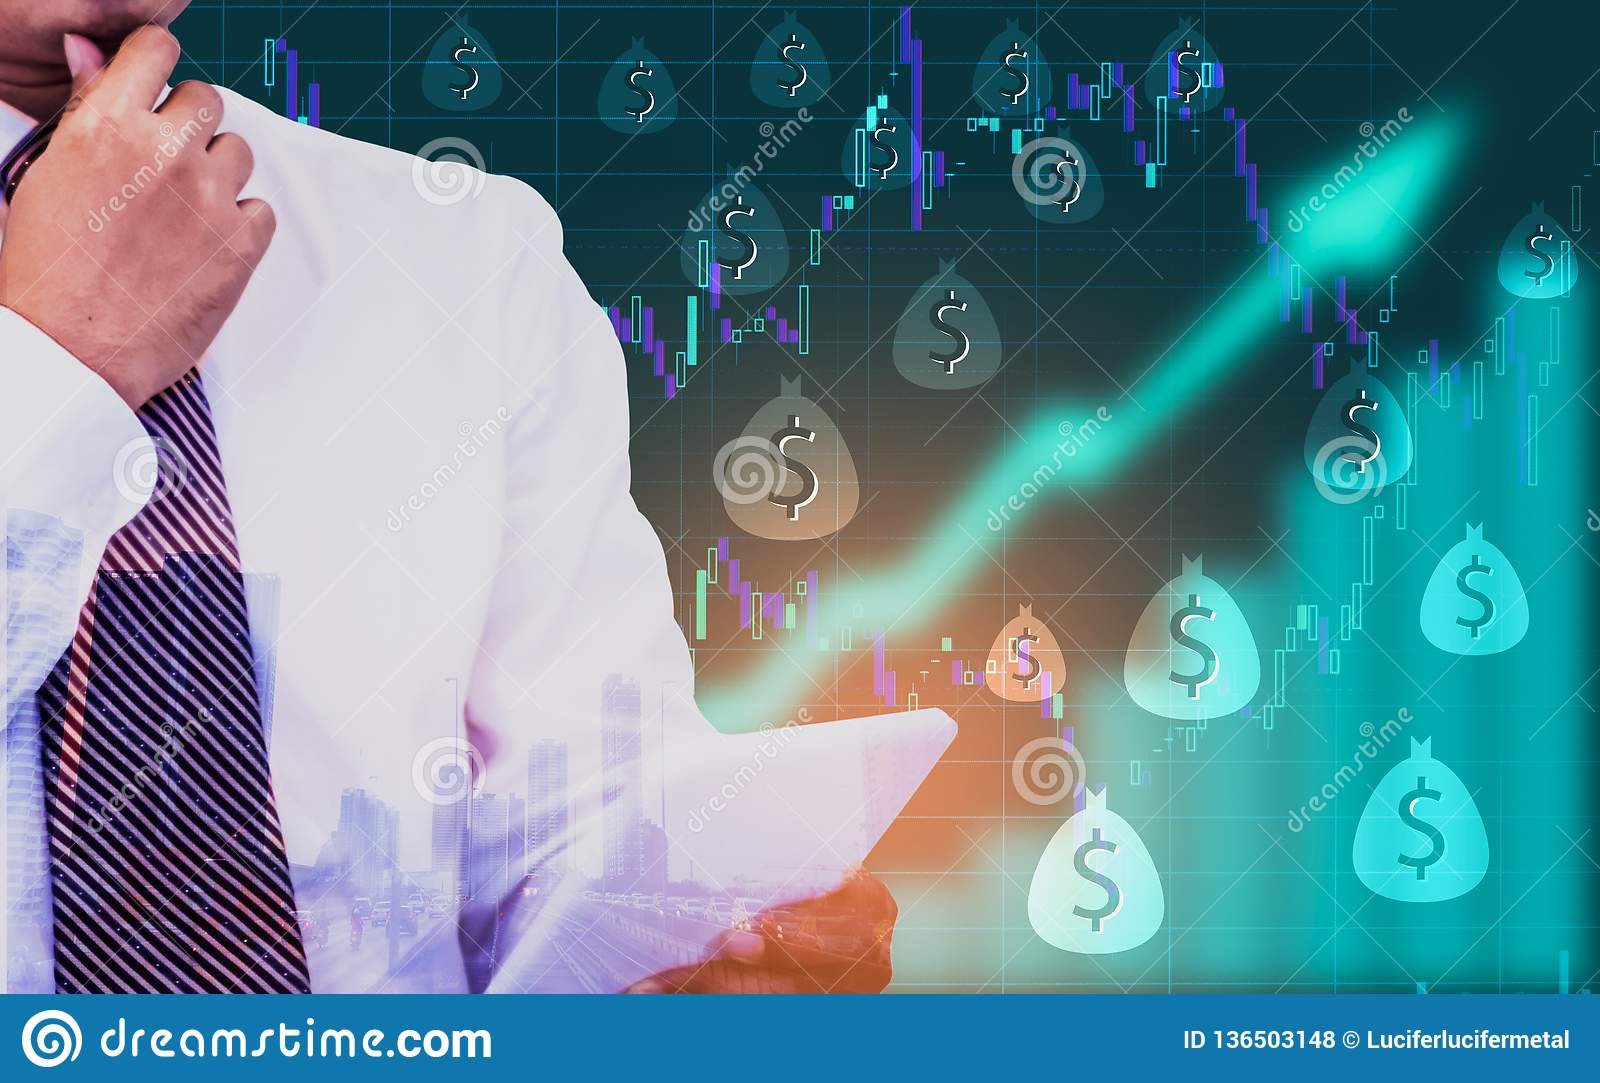 Double exposure - businessman holding a tablet in hand,background an arrow symbol and stock chart,With dollar currency icons,